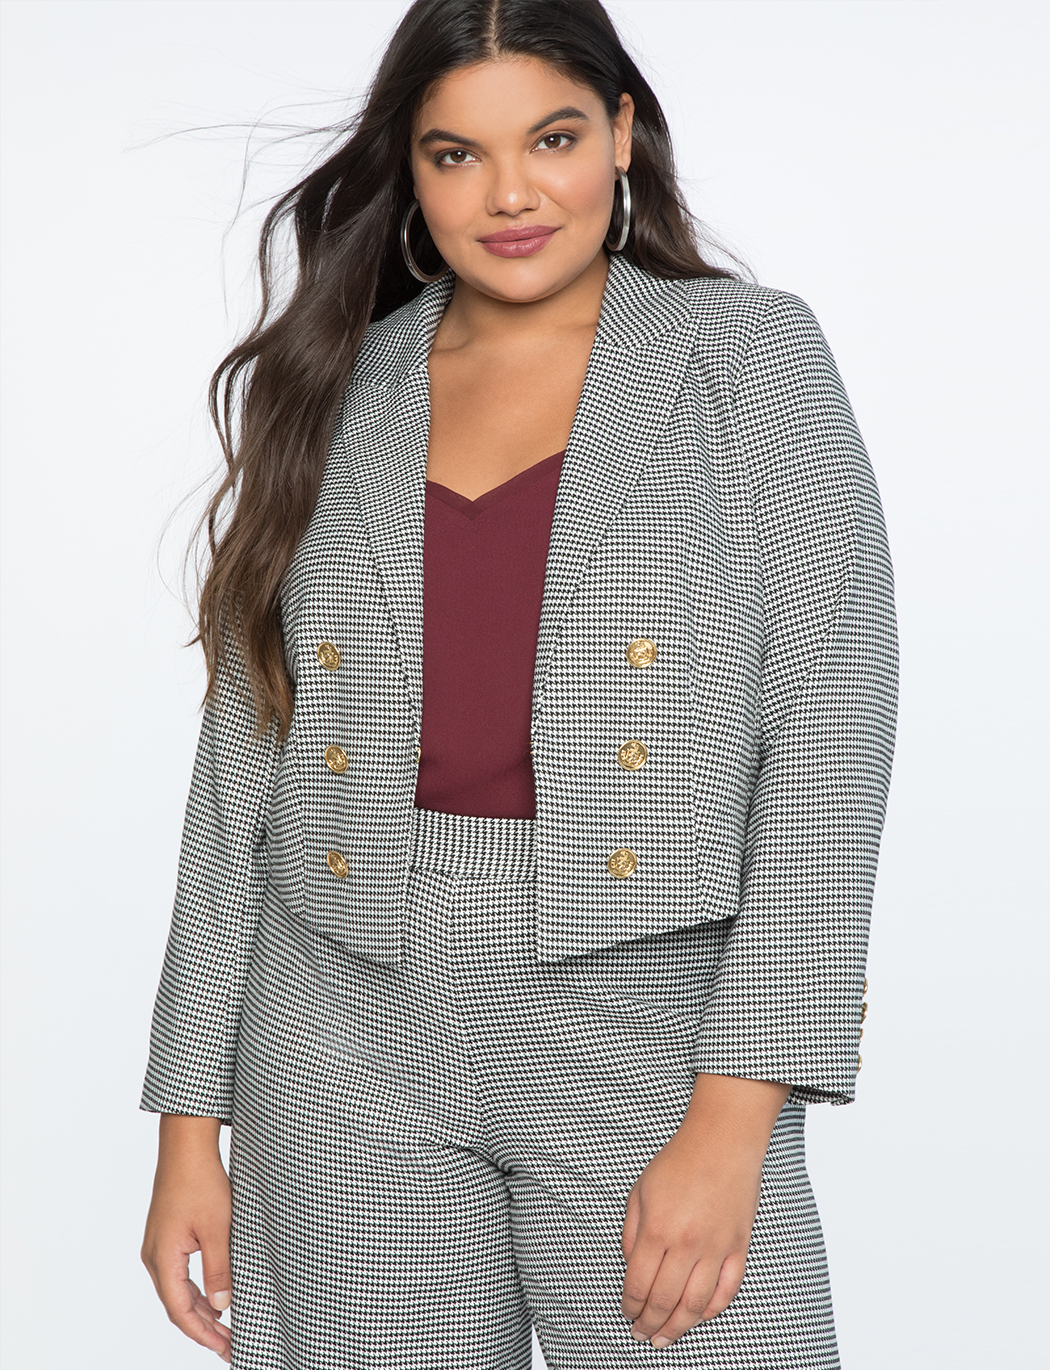 Double Slit Houndstooth Jacket    $89.90